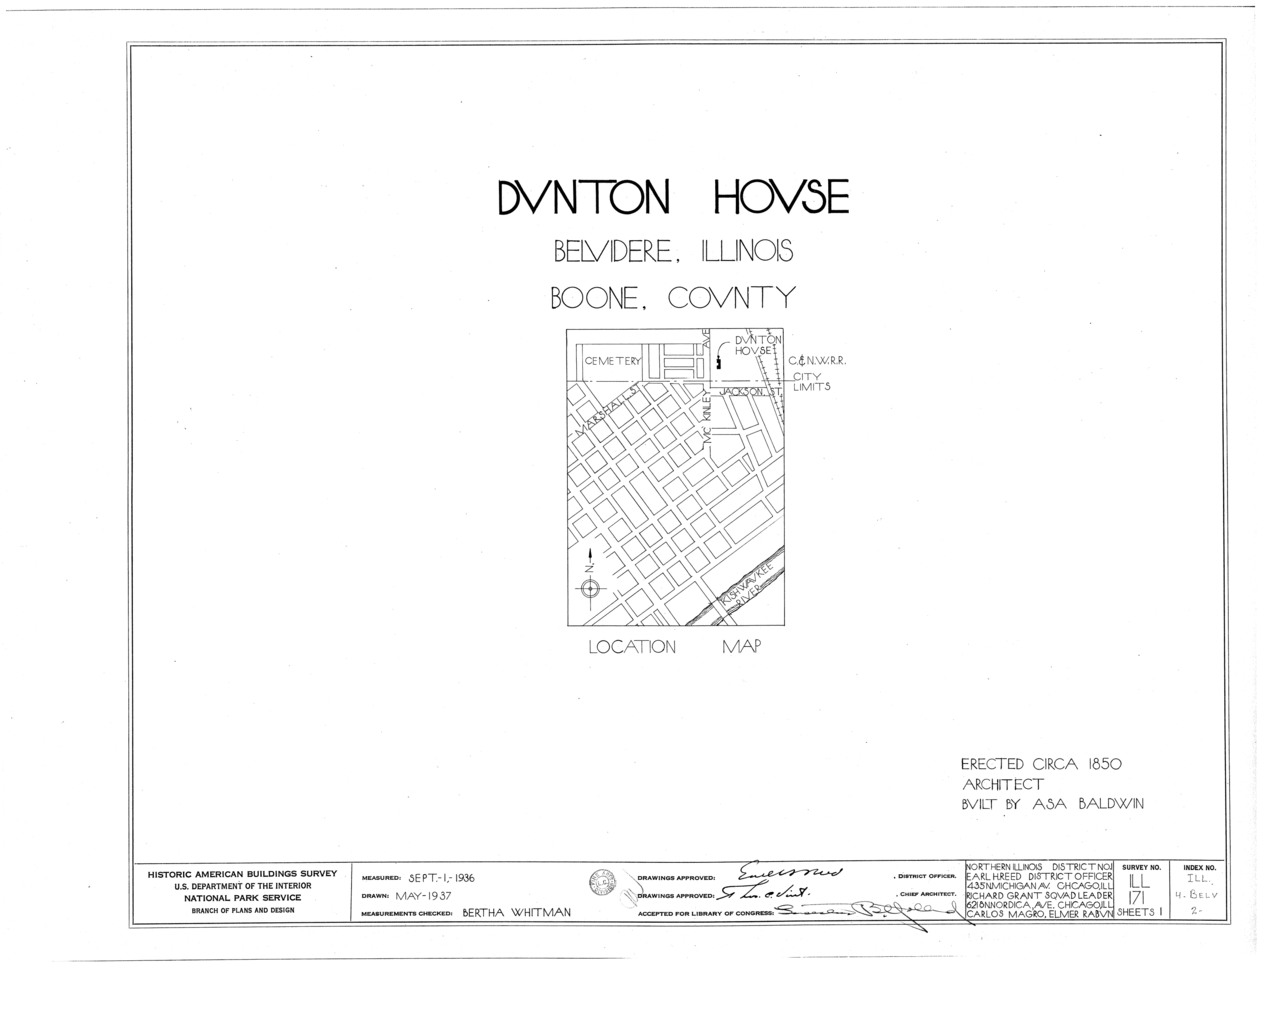 Illinois boone county belvidere - File Dunton House 807 Mckinley Avenue Belvidere Boone County Il Habs Ill 4 Belv 2 Sheet 0 Of 1 Png